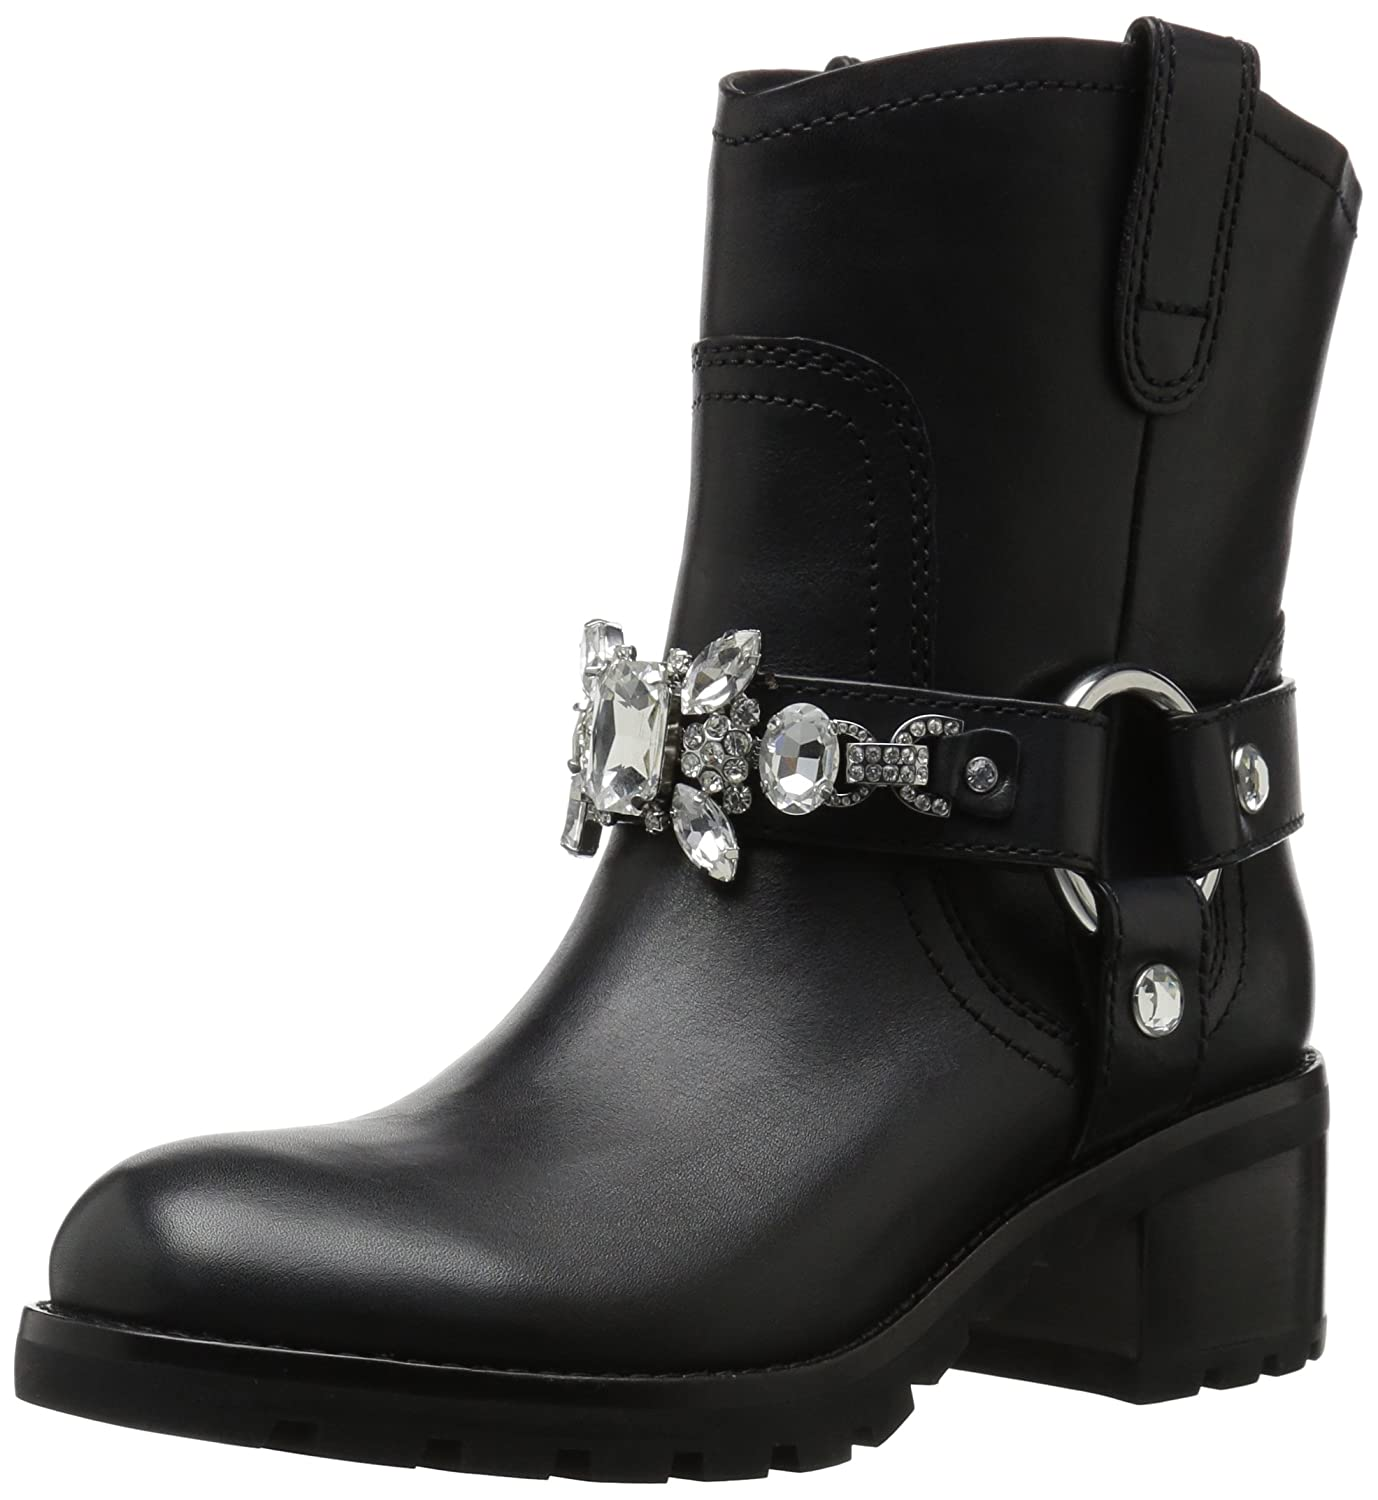 Marc Jacobs M Women's Campbell Embellished Ankle Boot B07322FFT5 35.5 M Jacobs EU (5.5 US)|Black 46a3d1